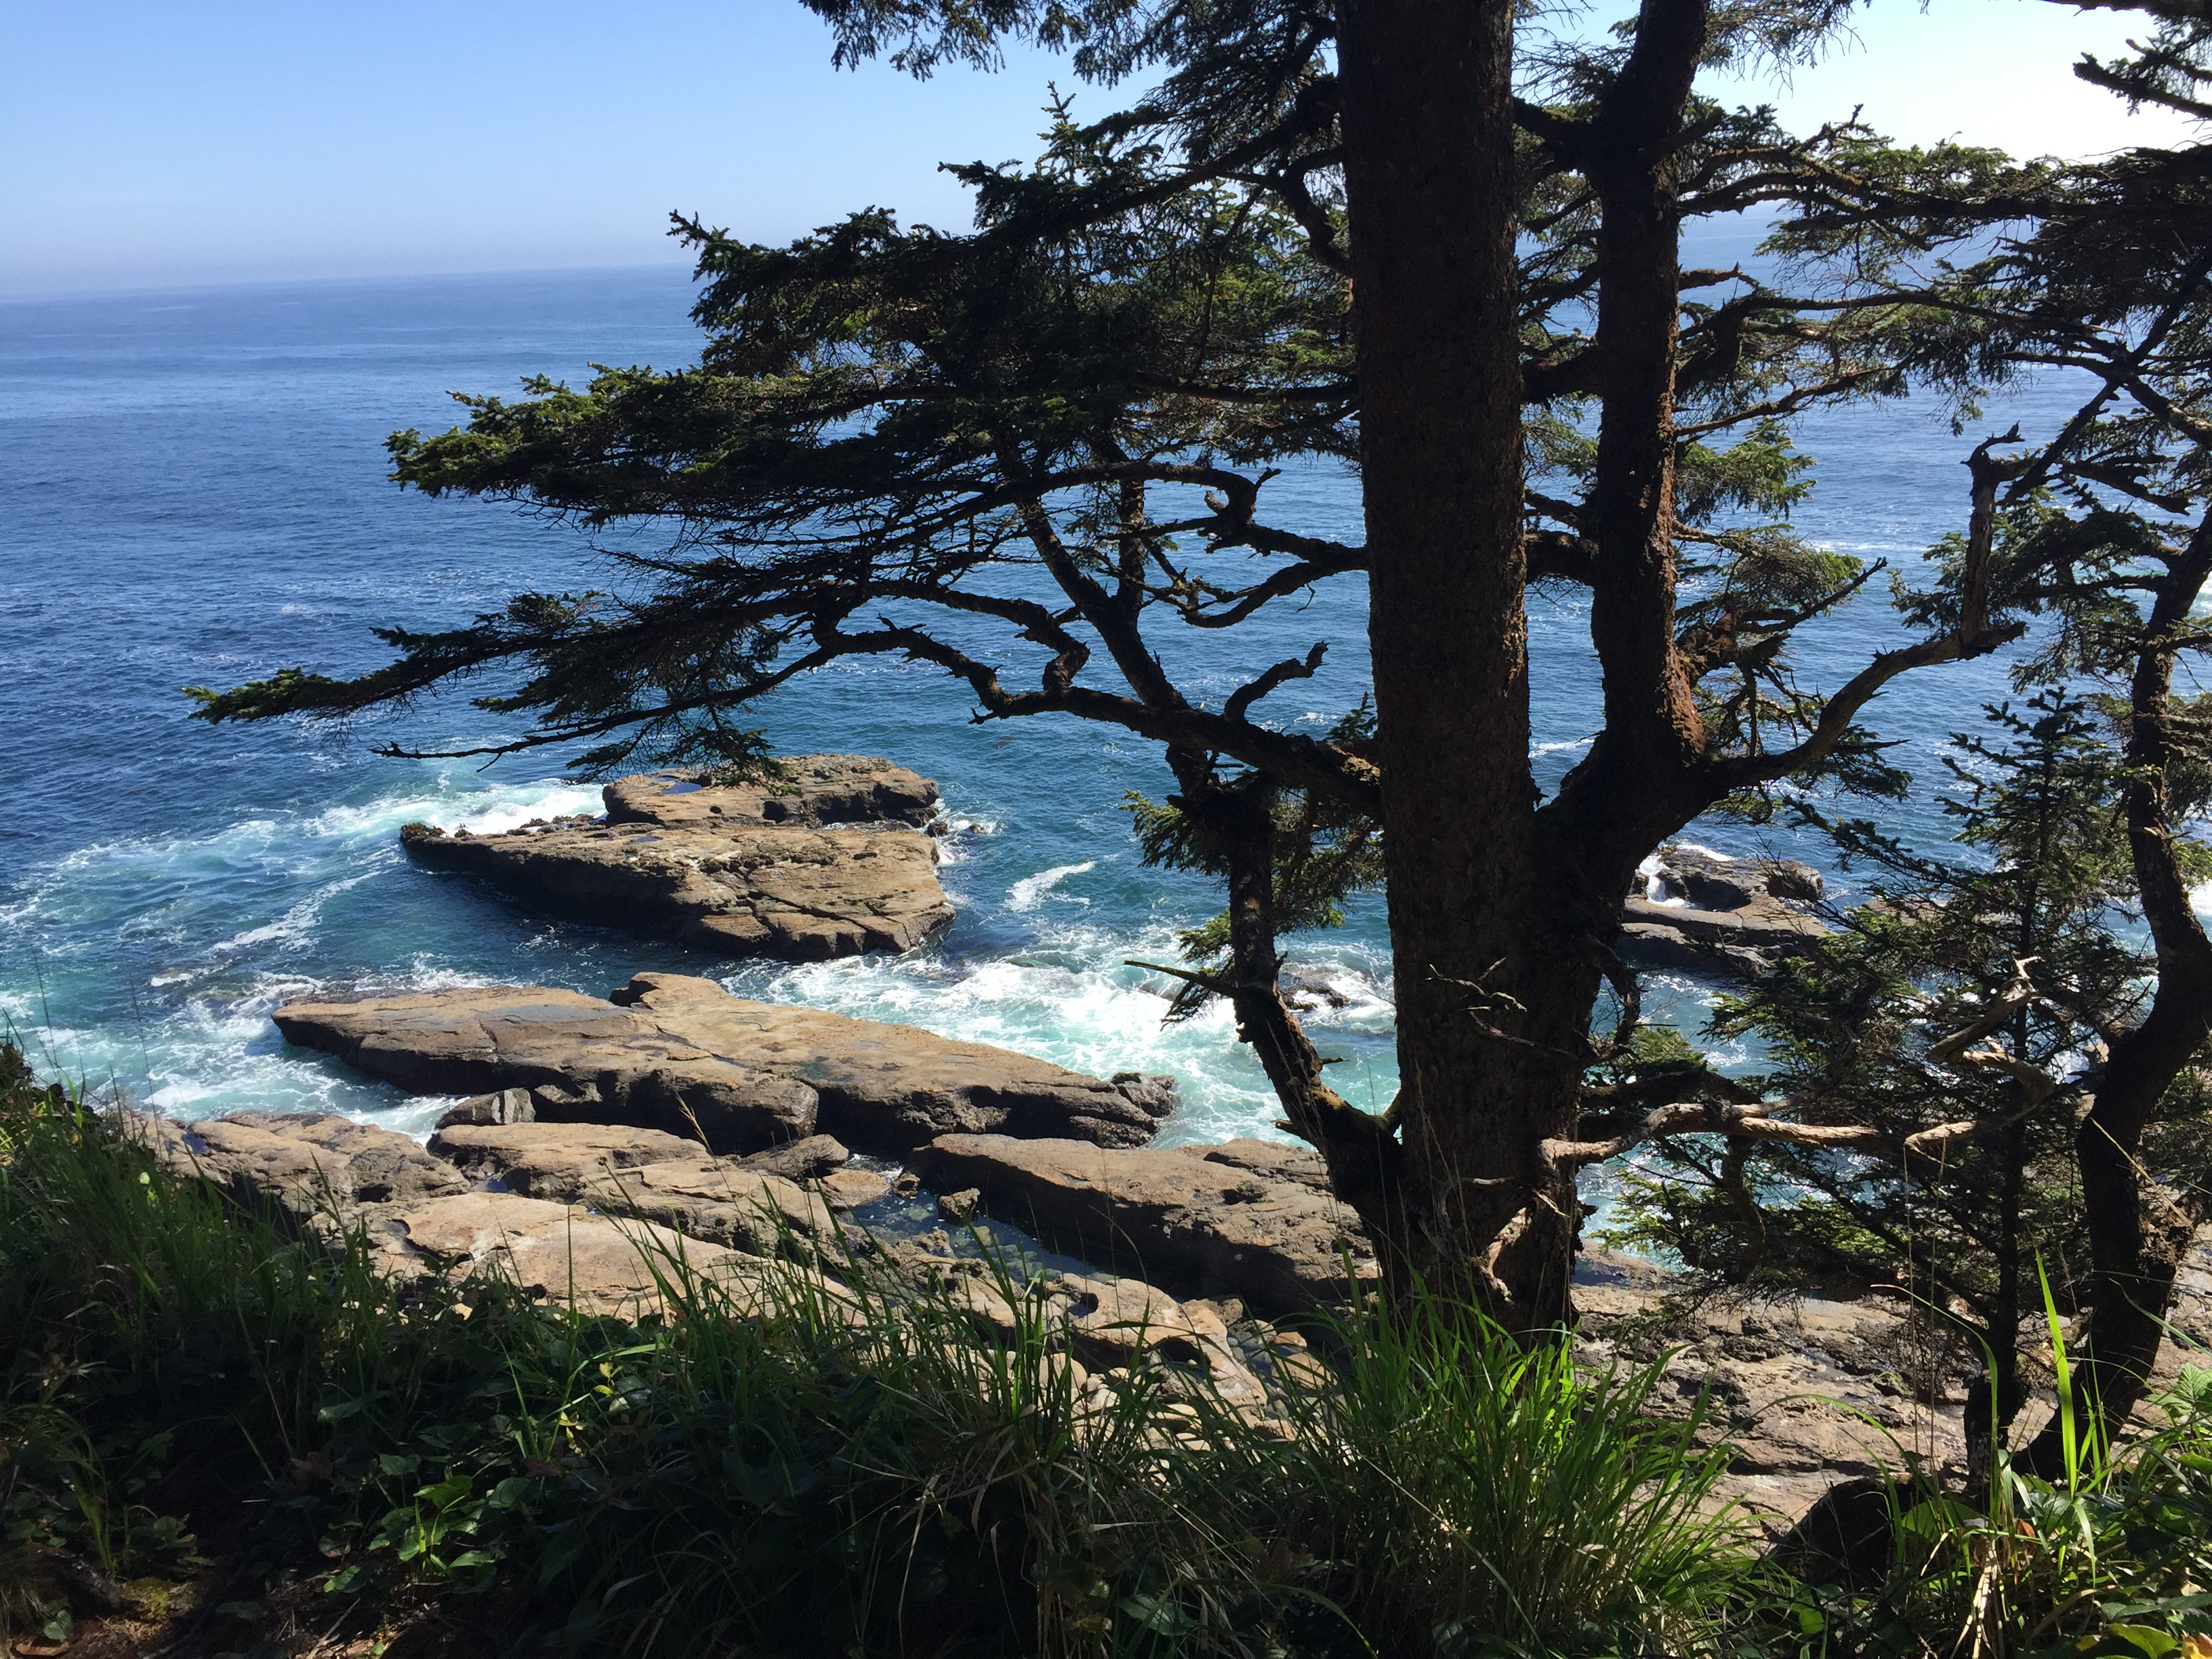 west coast trail tips and view of the ocean